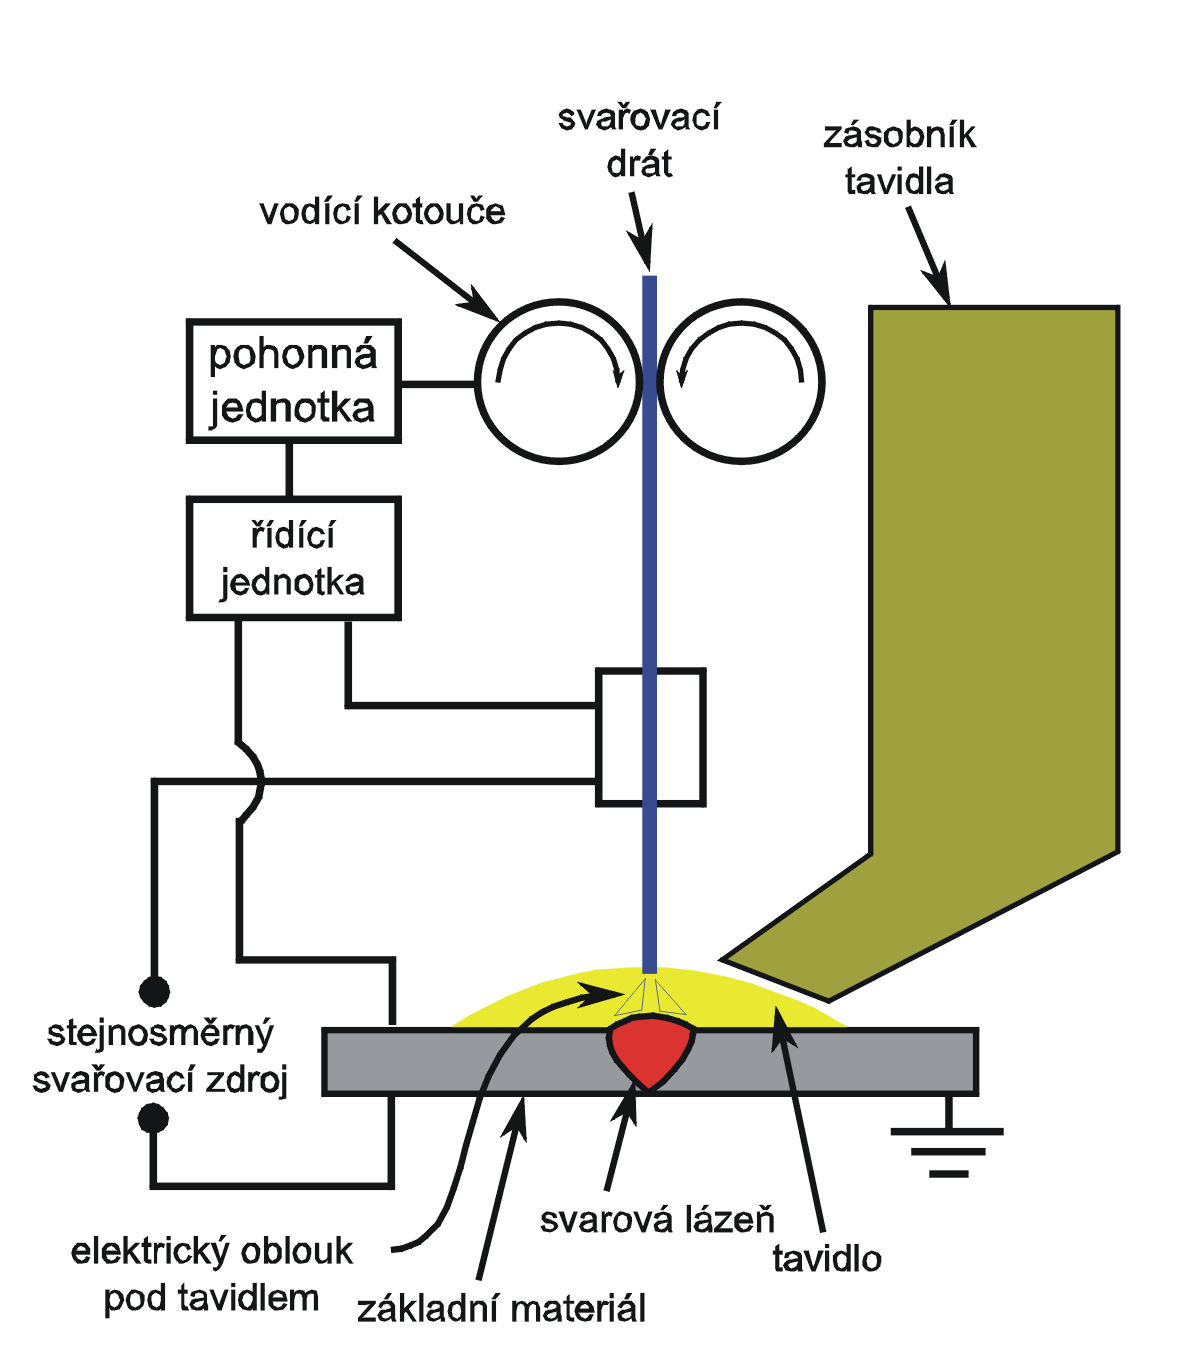 file submerged arc welding schematic cz png wikimedia commons arc welding schematic diagram  arc welder schematic diagram file submerged arc welding schematic cz png